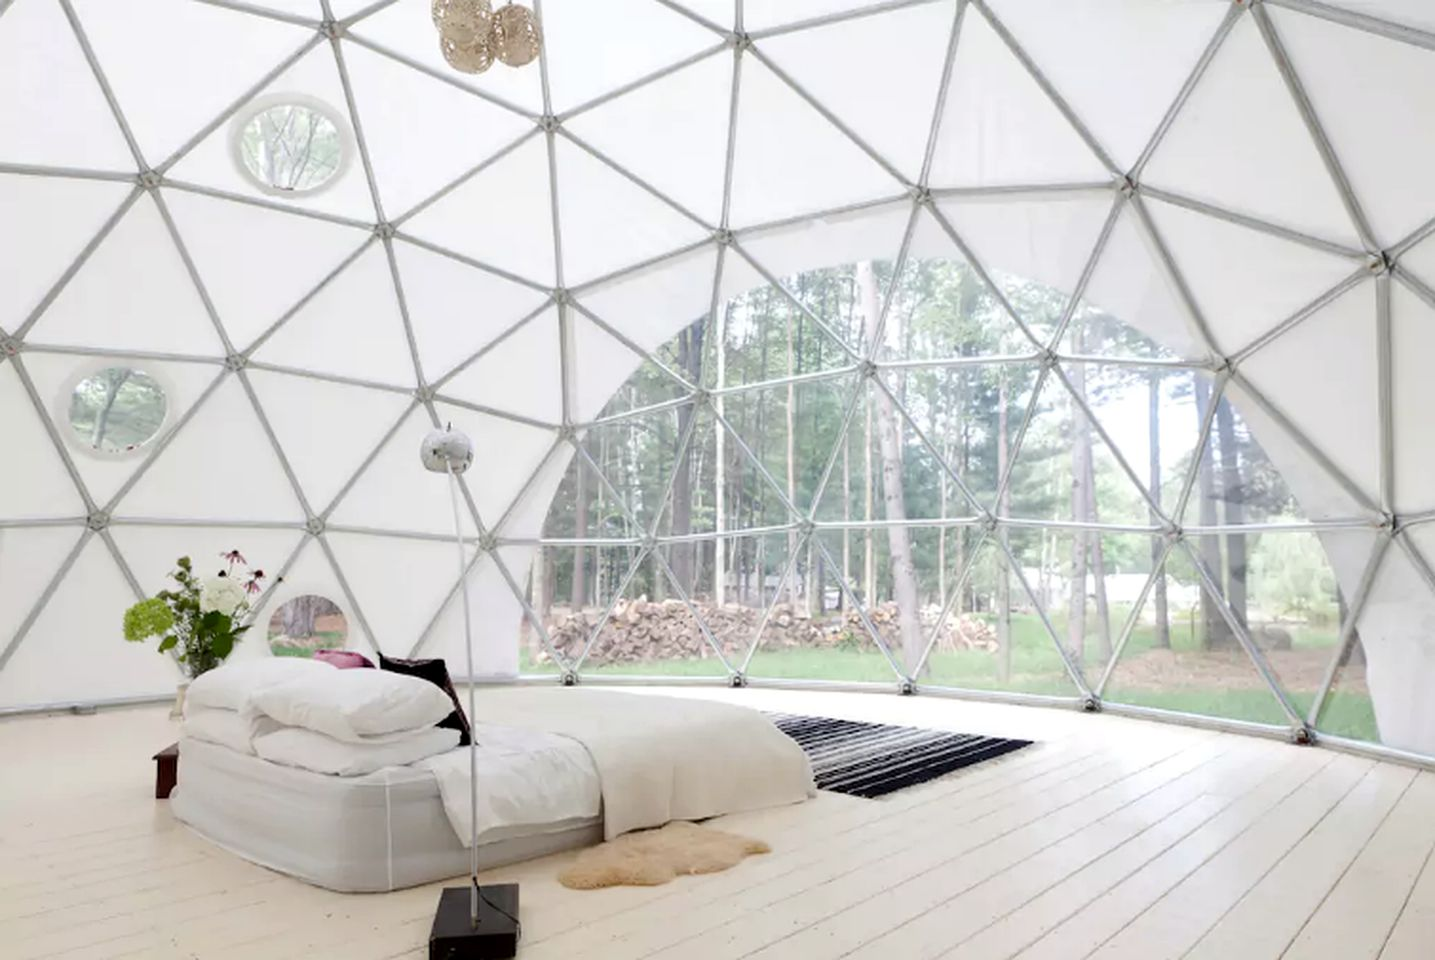 Large group dome rental in the Catskill Mountains